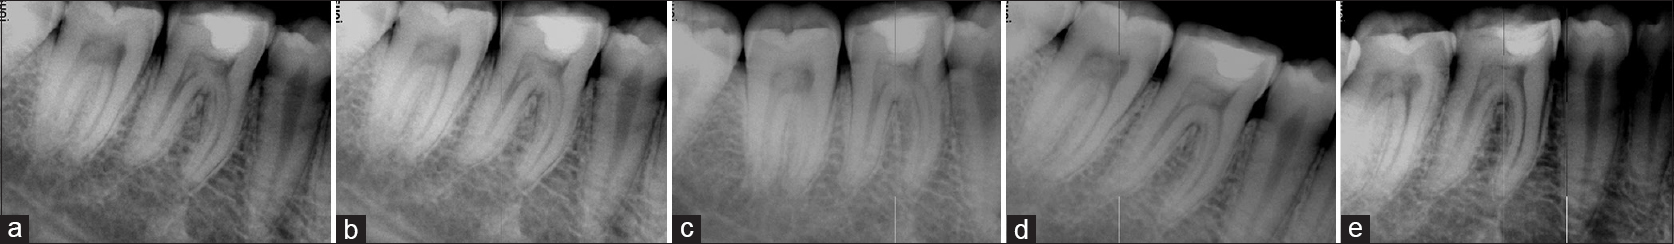 Preventive endodontics by direct pulp capping with restorative